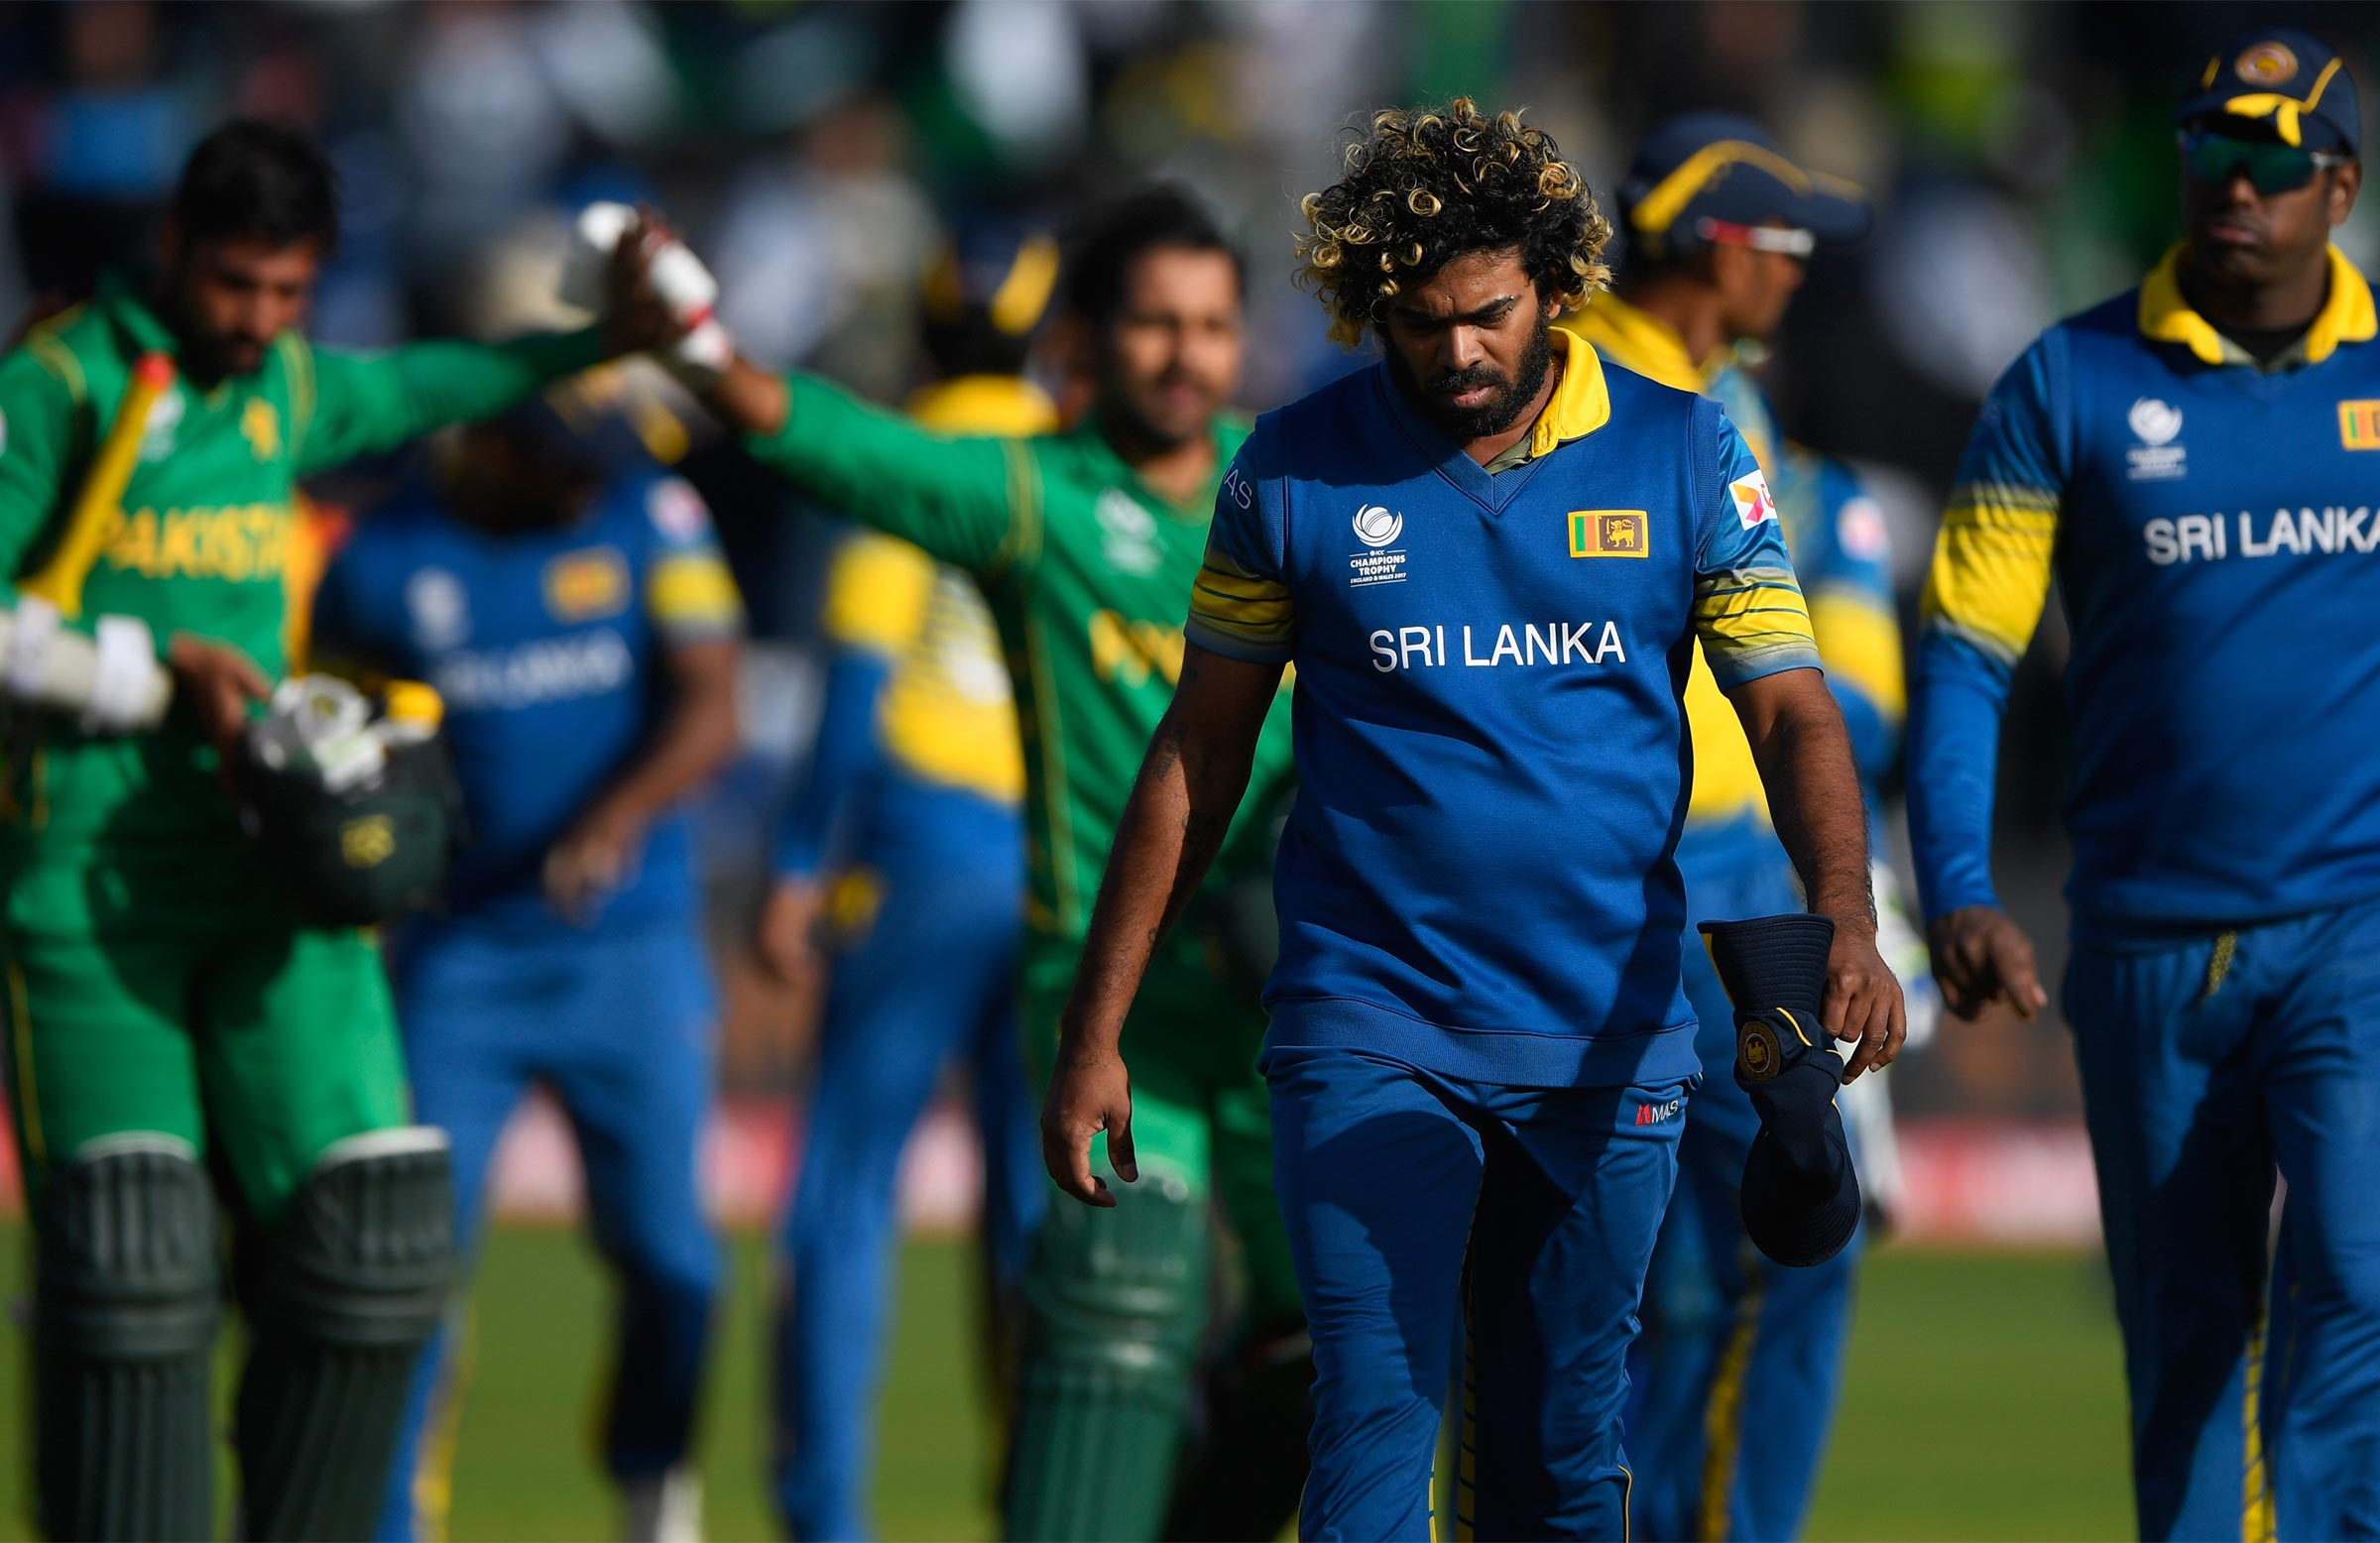 Malinga has been punished but won